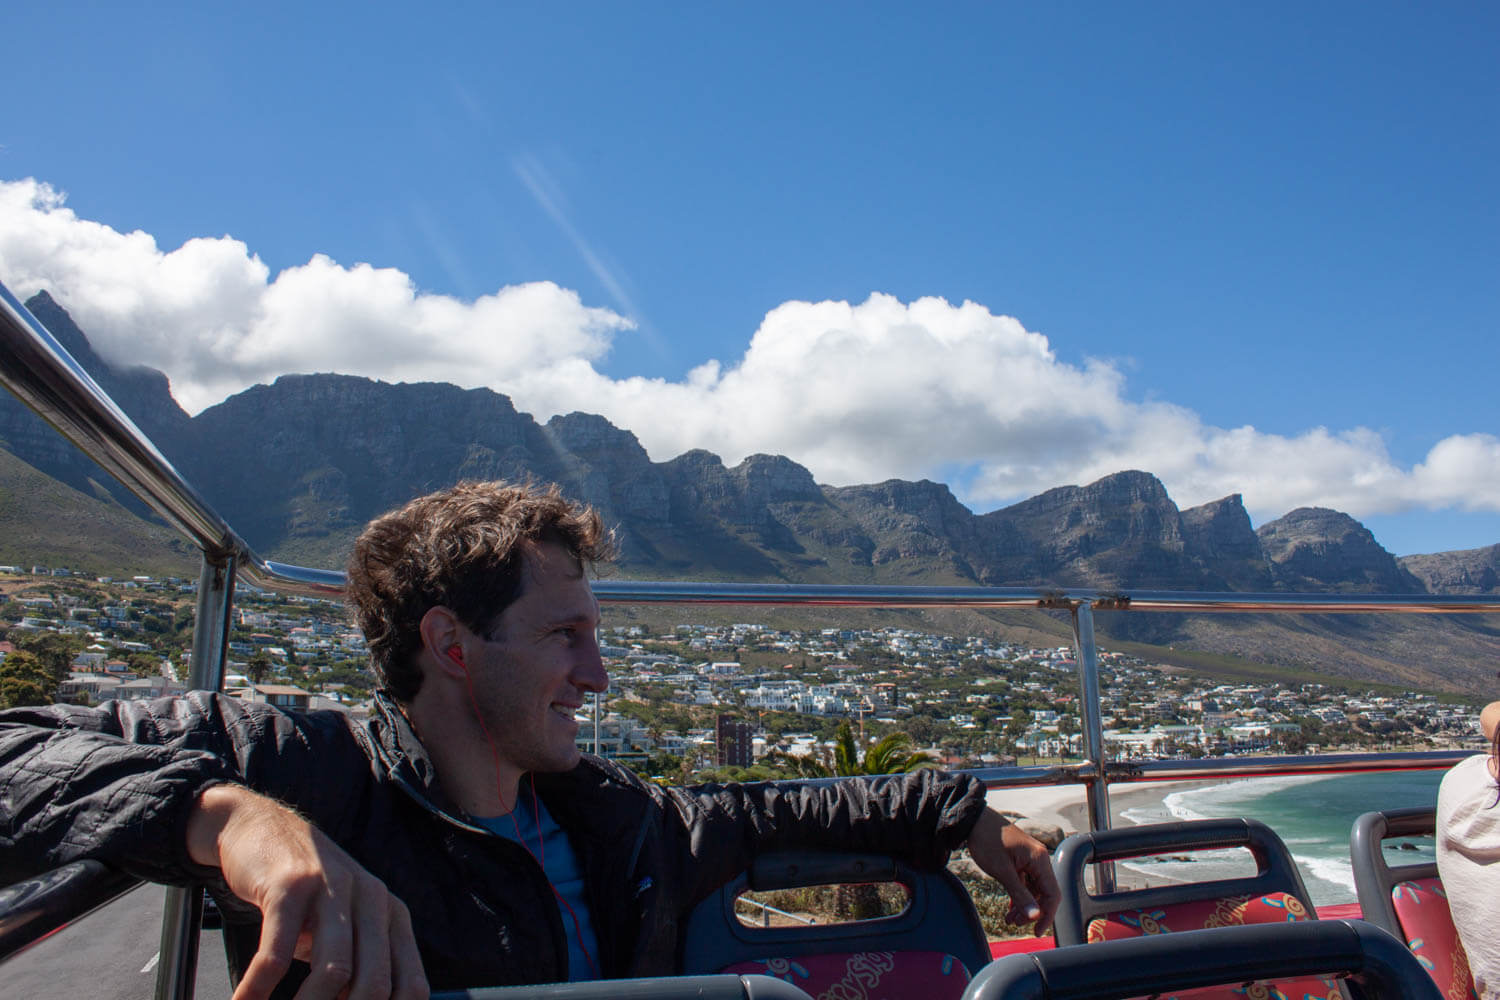 Chris chilling on the back of the hop on hop off bus with the Twelve Apostles in the background